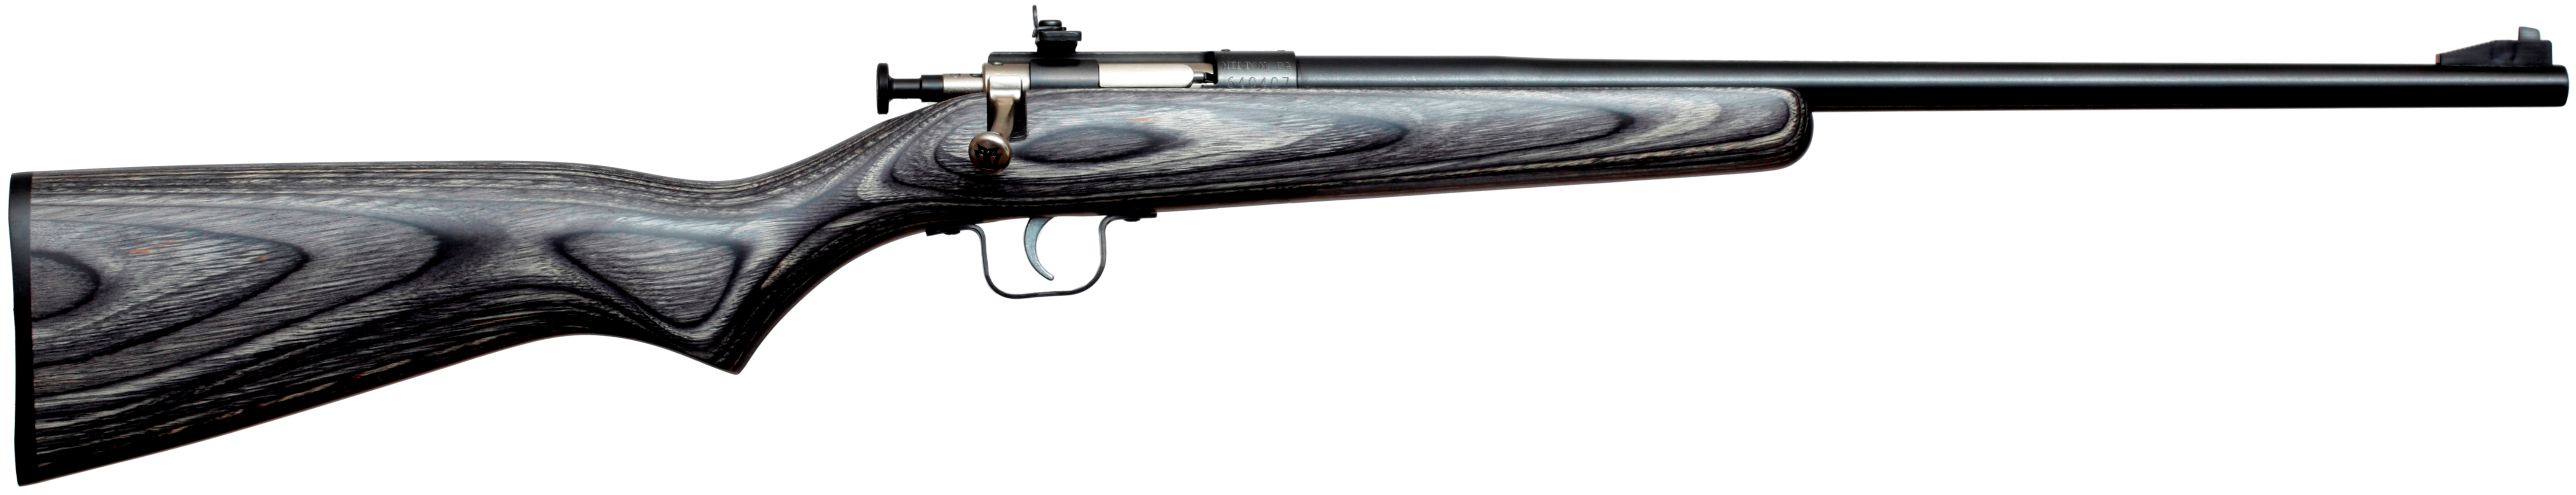 Crickett Youth Rifle 22lr Laminate Florida Gun Supply Get Armed Get Trained Carry Daily